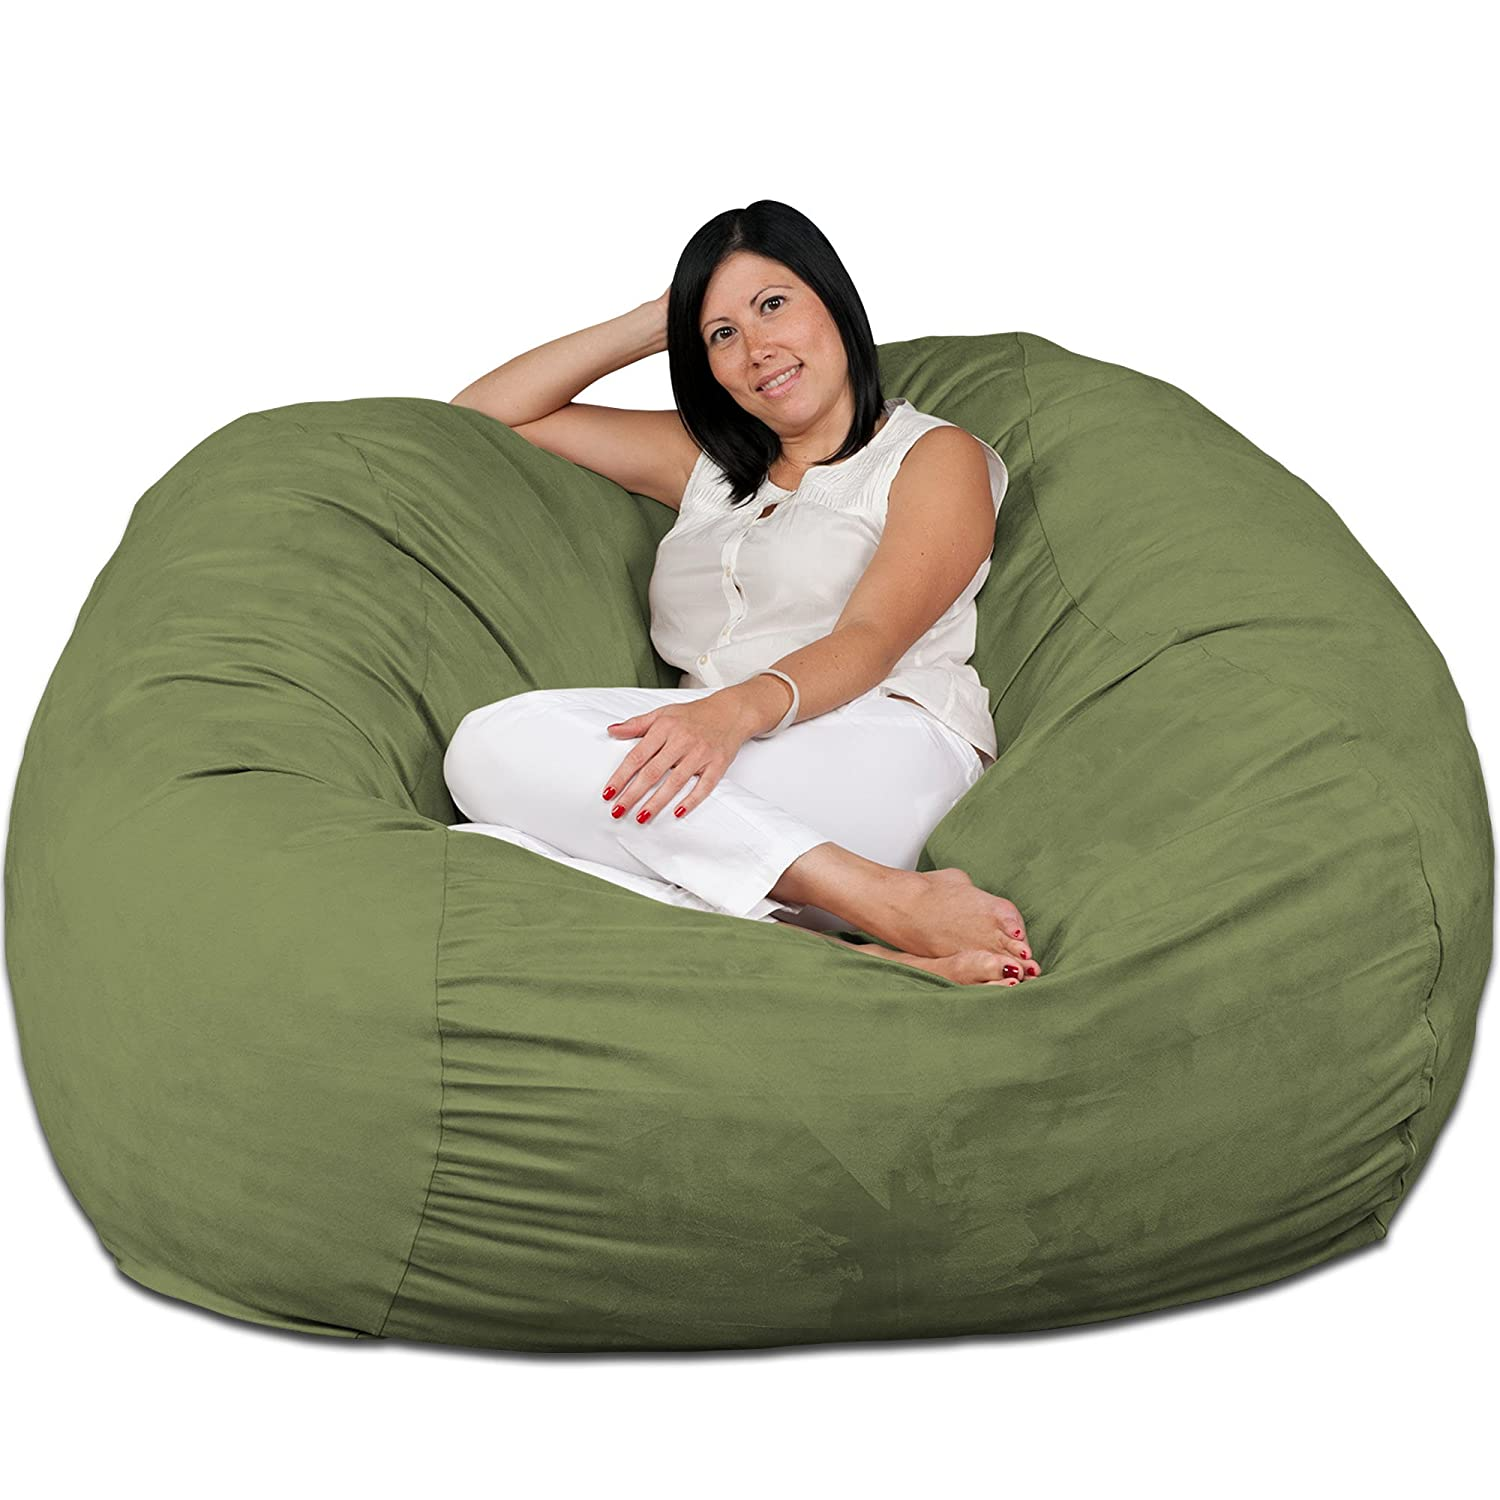 Brilliant Fugu Large Bean Bag Chair Premium Foam Filled 5 Xl Protective Liner Plus Removable Machine Wash Lime Green Cover Caraccident5 Cool Chair Designs And Ideas Caraccident5Info